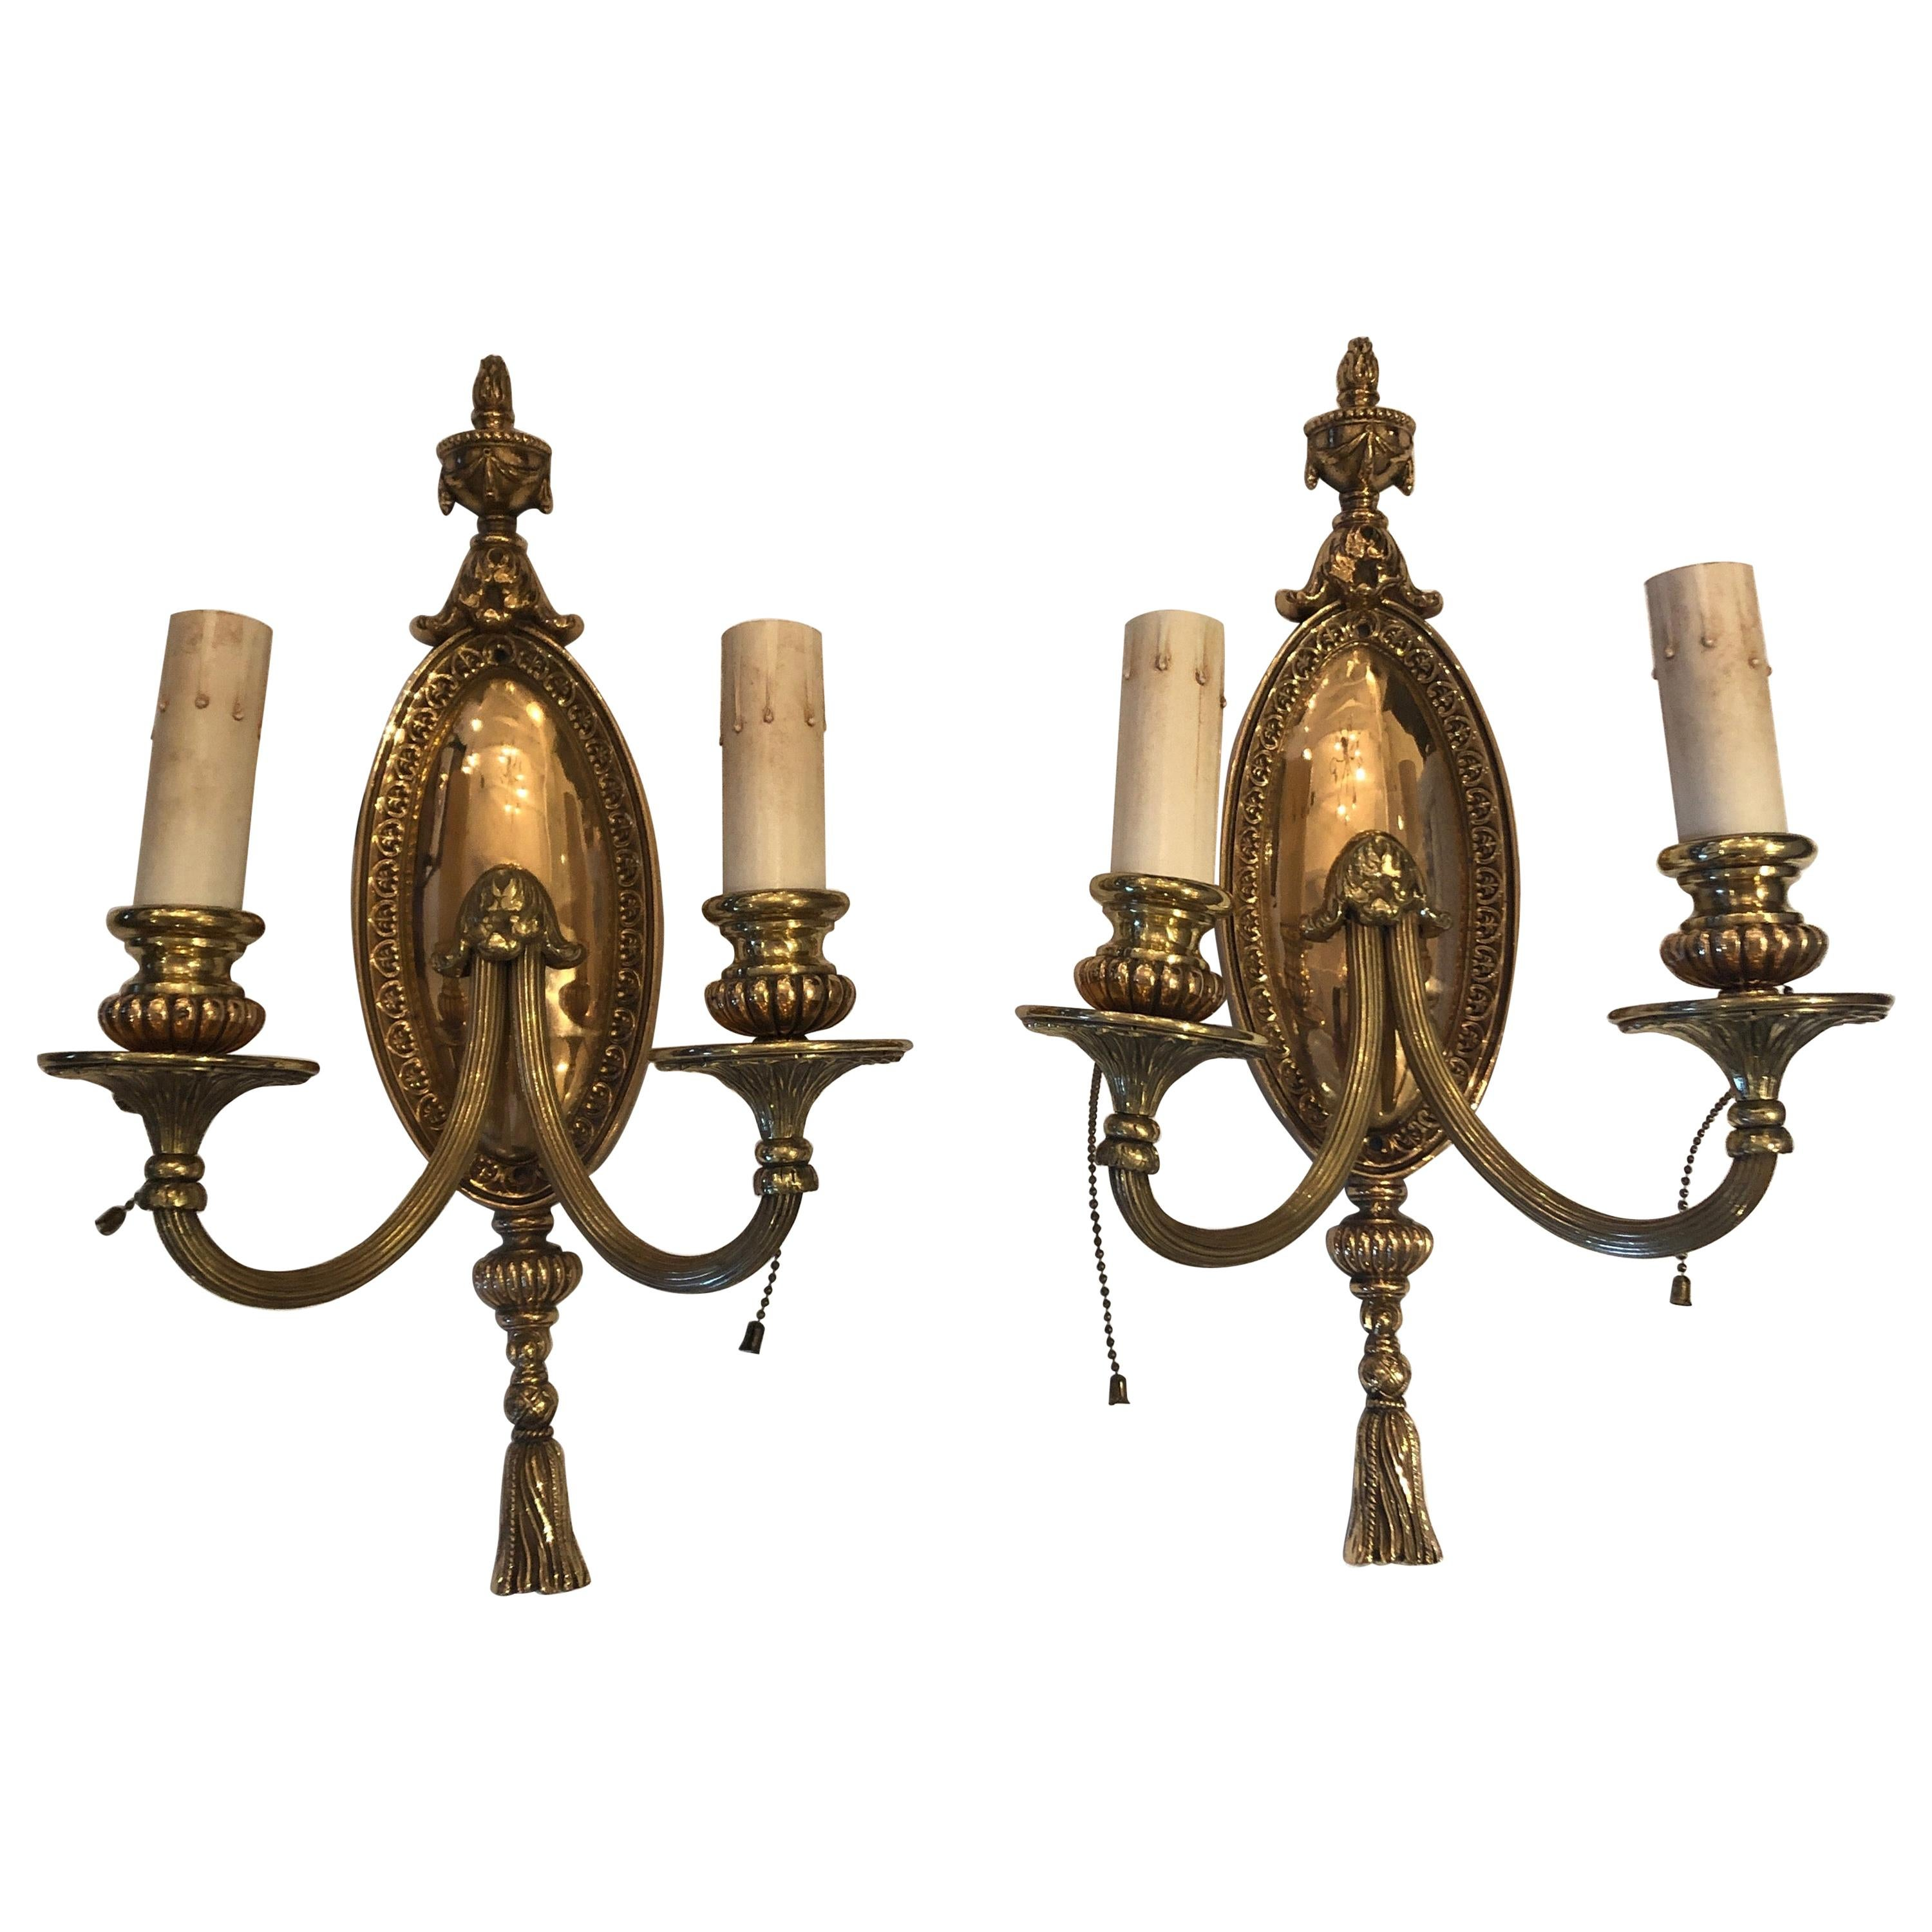 Pair of Splendid Bronze French Empire Wall Sconces